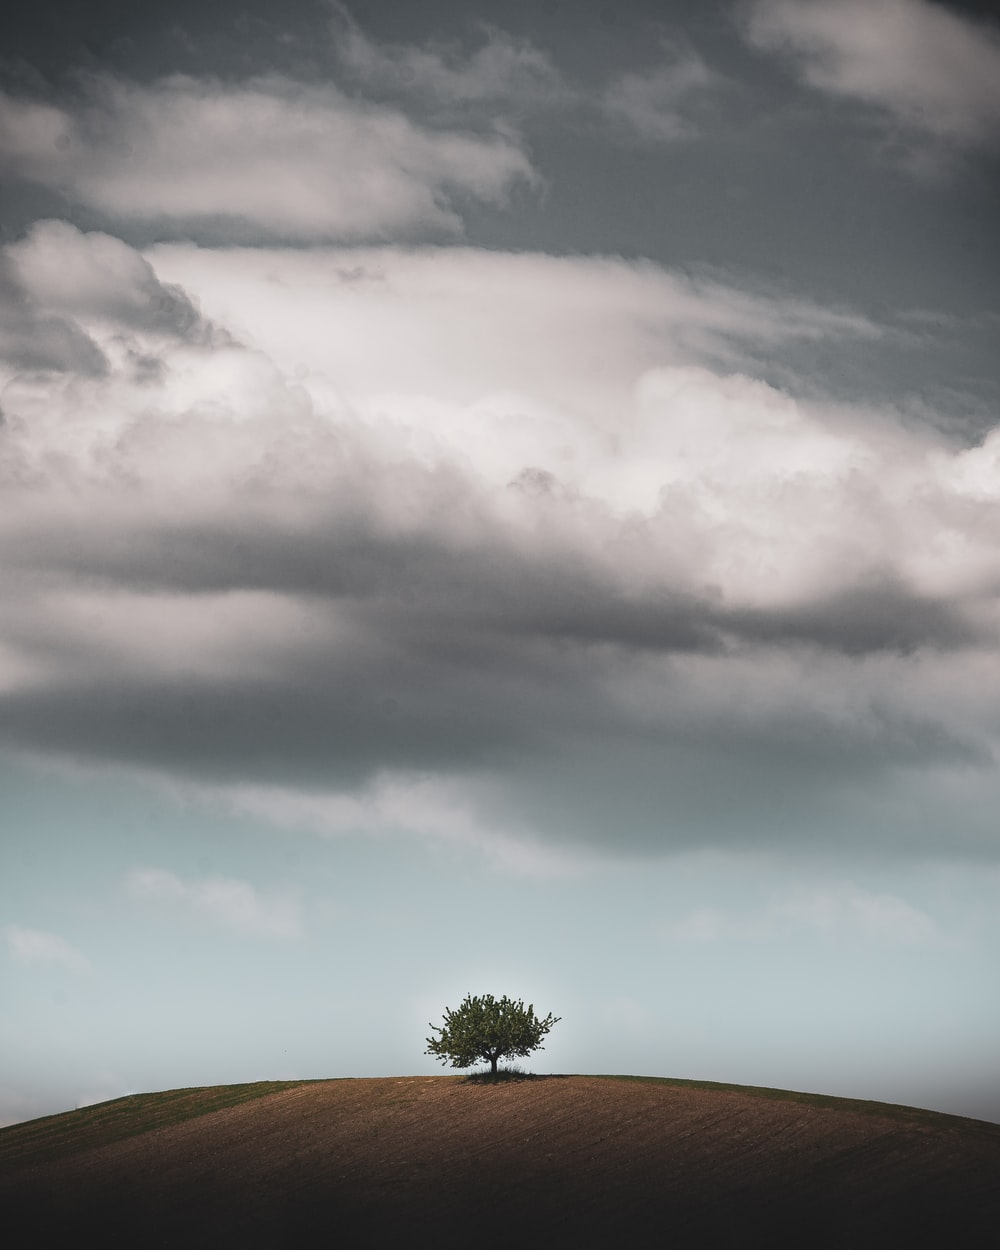 green tree under gray clouds